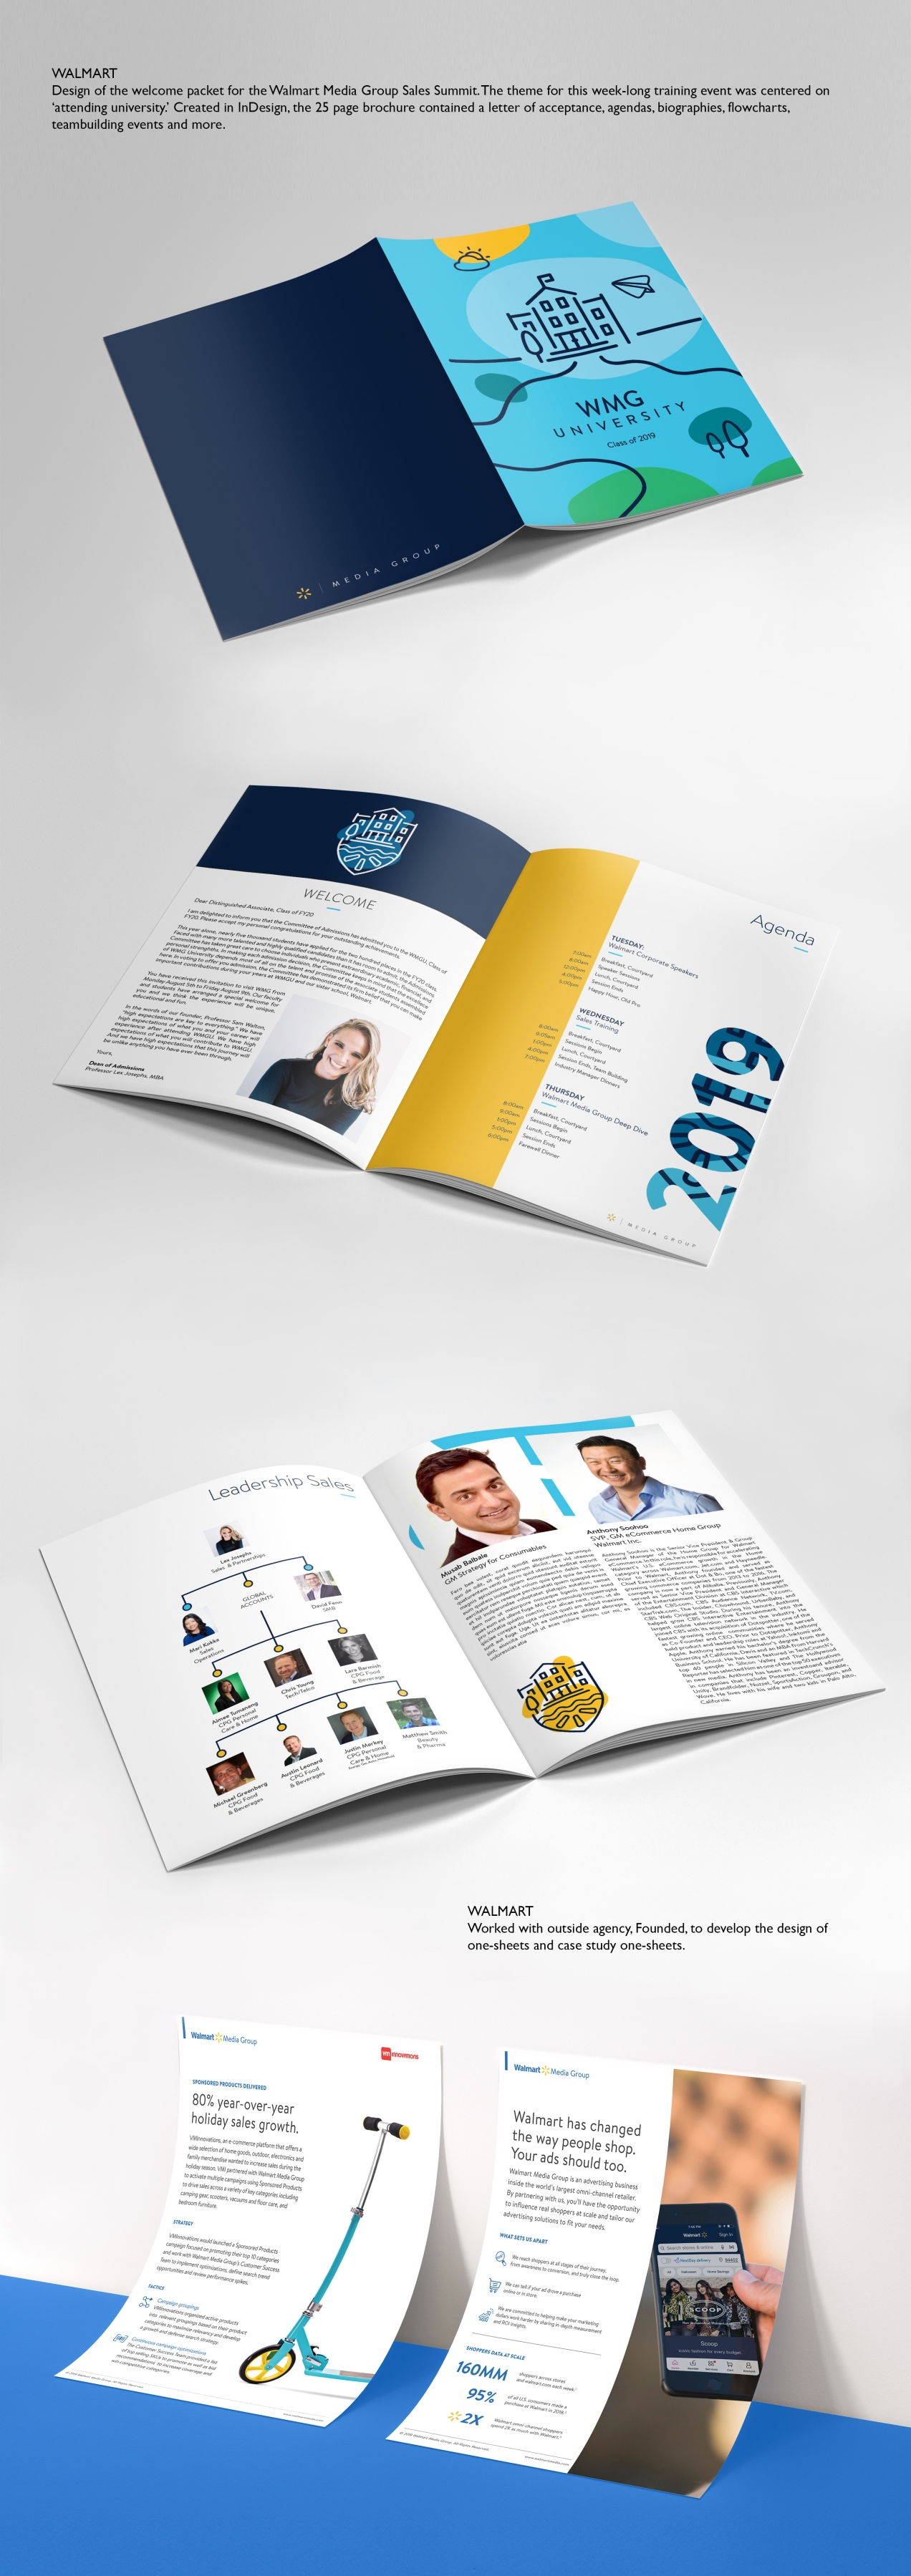 Sales Summit Brochure.jpg